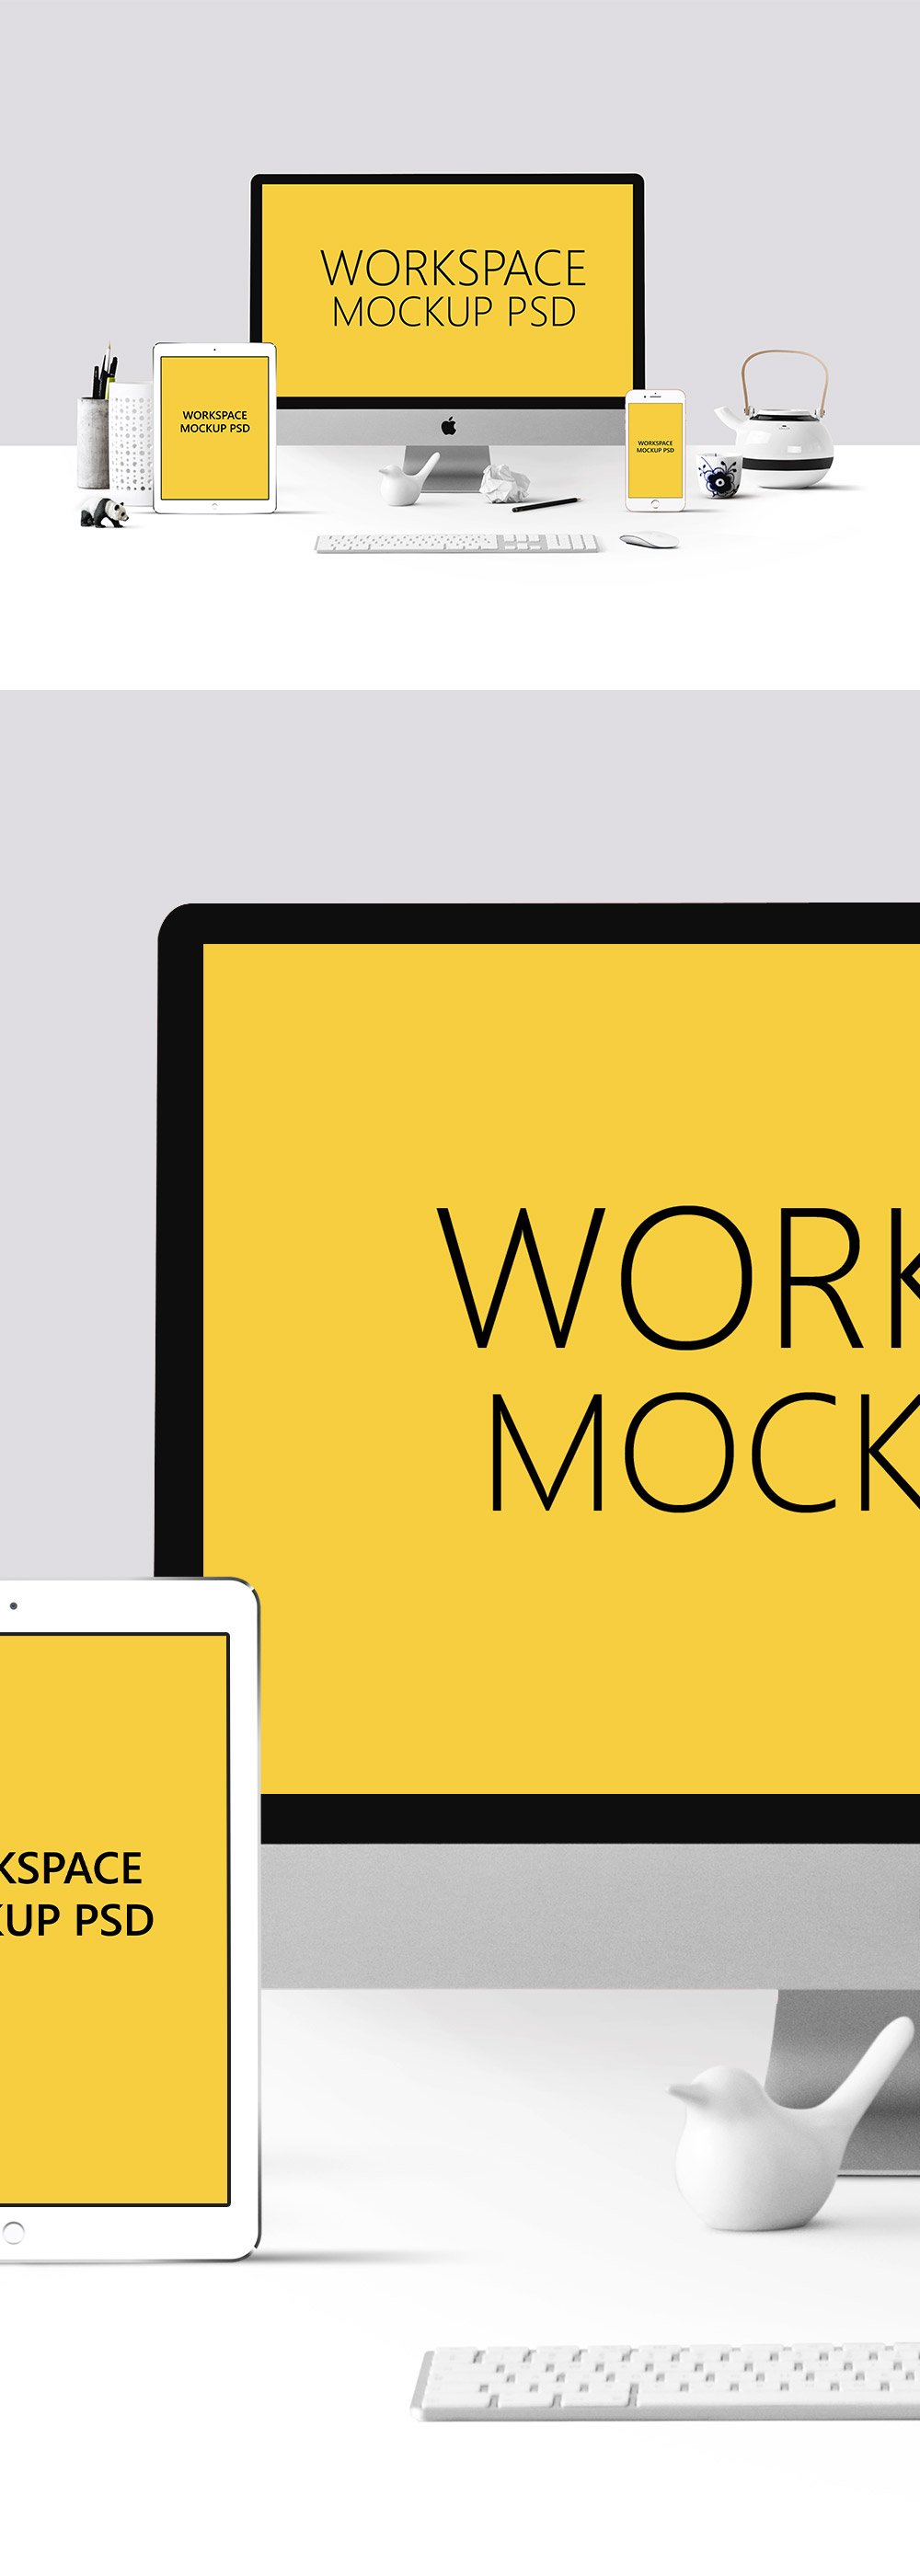 Free Workspace Mockup PSD